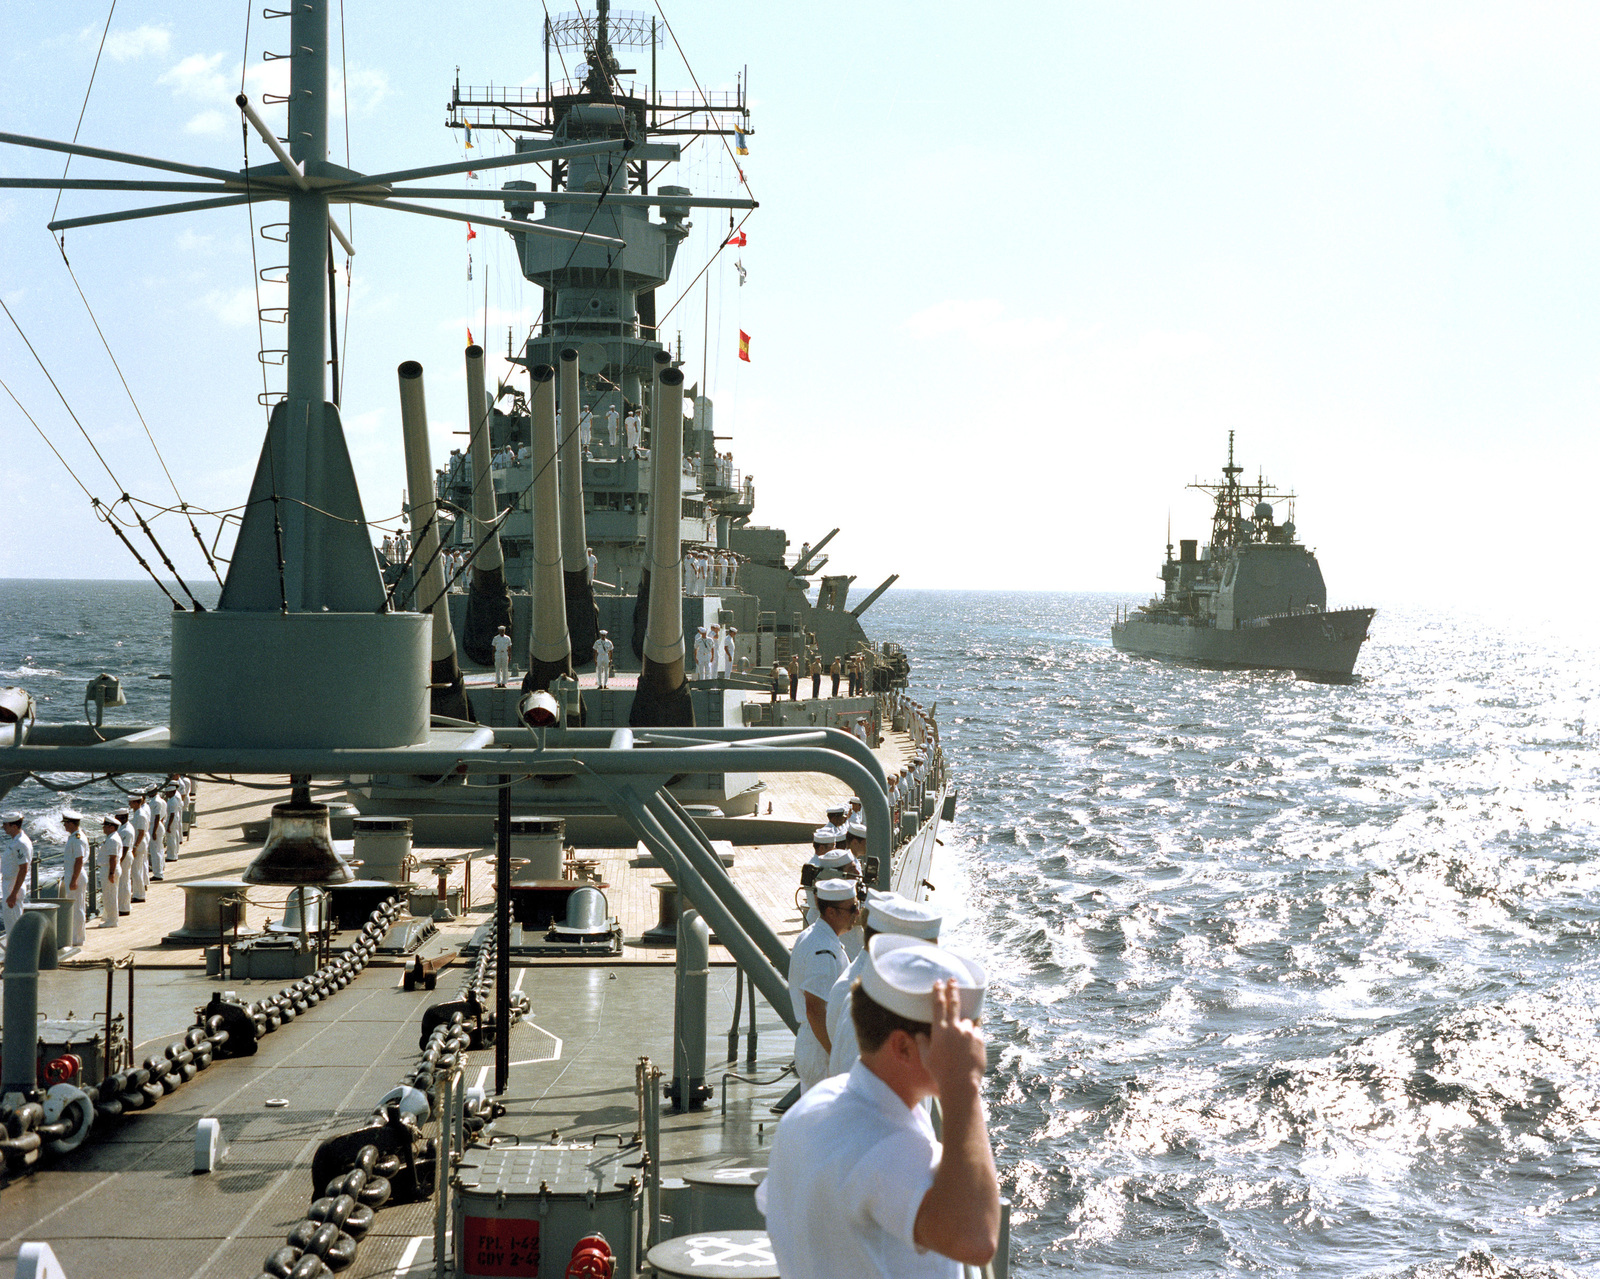 Crew members man the rail aboard the battleship USS IOWA (BB 61) during a pass in review ceremony for officials of the Central America nation of Belize. On the right is the guided missile cruiser USS TICONDEROGA (CG 47)